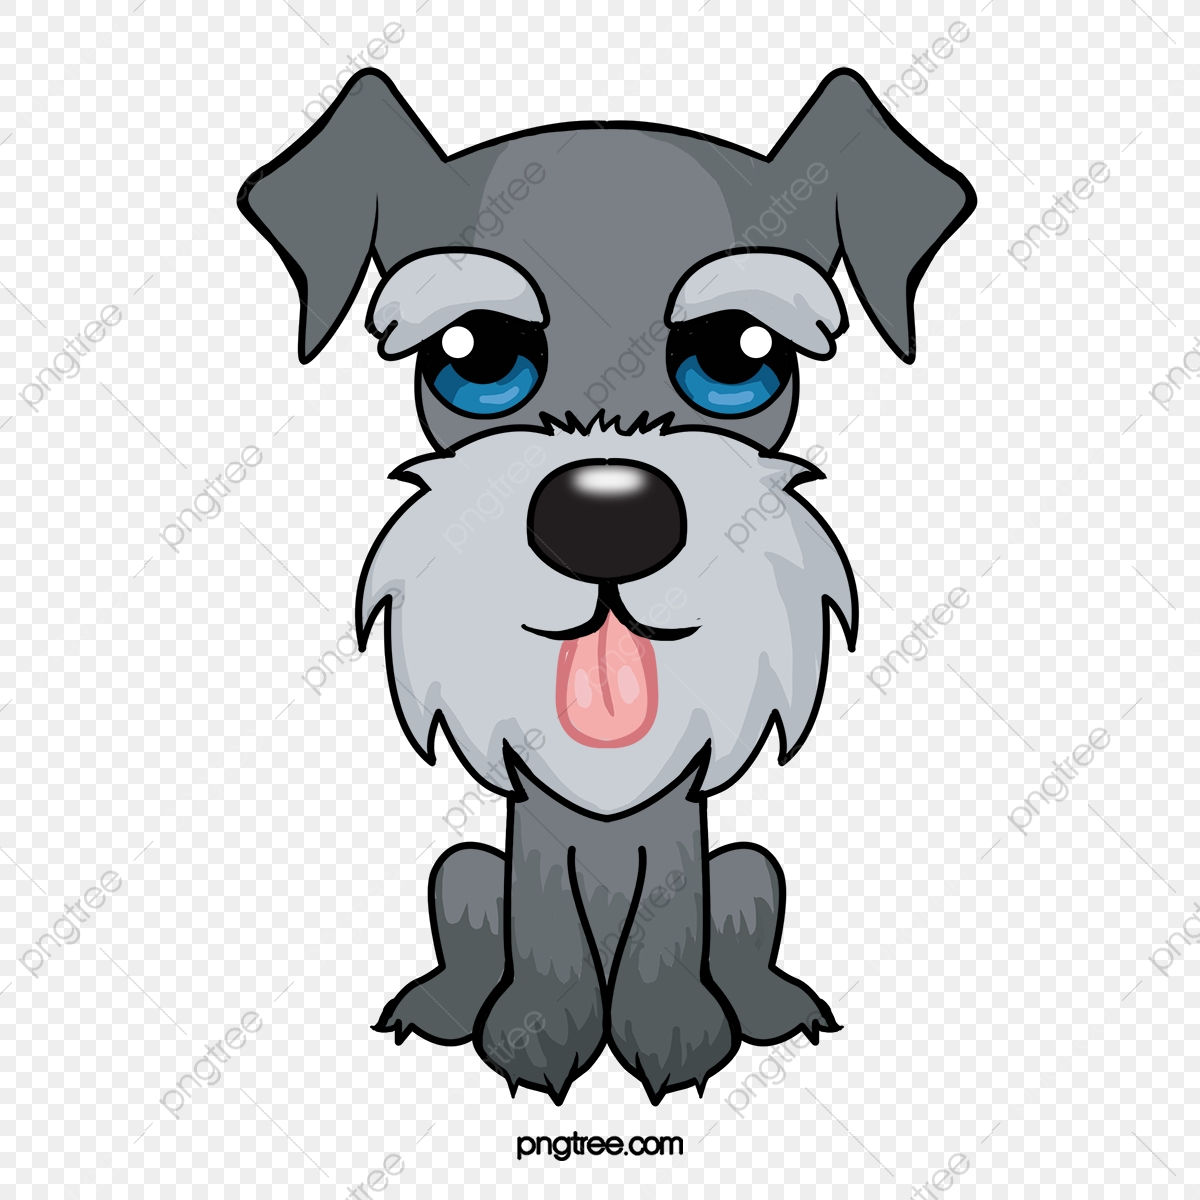 Dog Cartoon Dog Pattern Cartoon Cute Puppy Cartoon Clipart Dog Clipart Cute Clipart Png Transparent Clipart Image And Psd File For Free Download